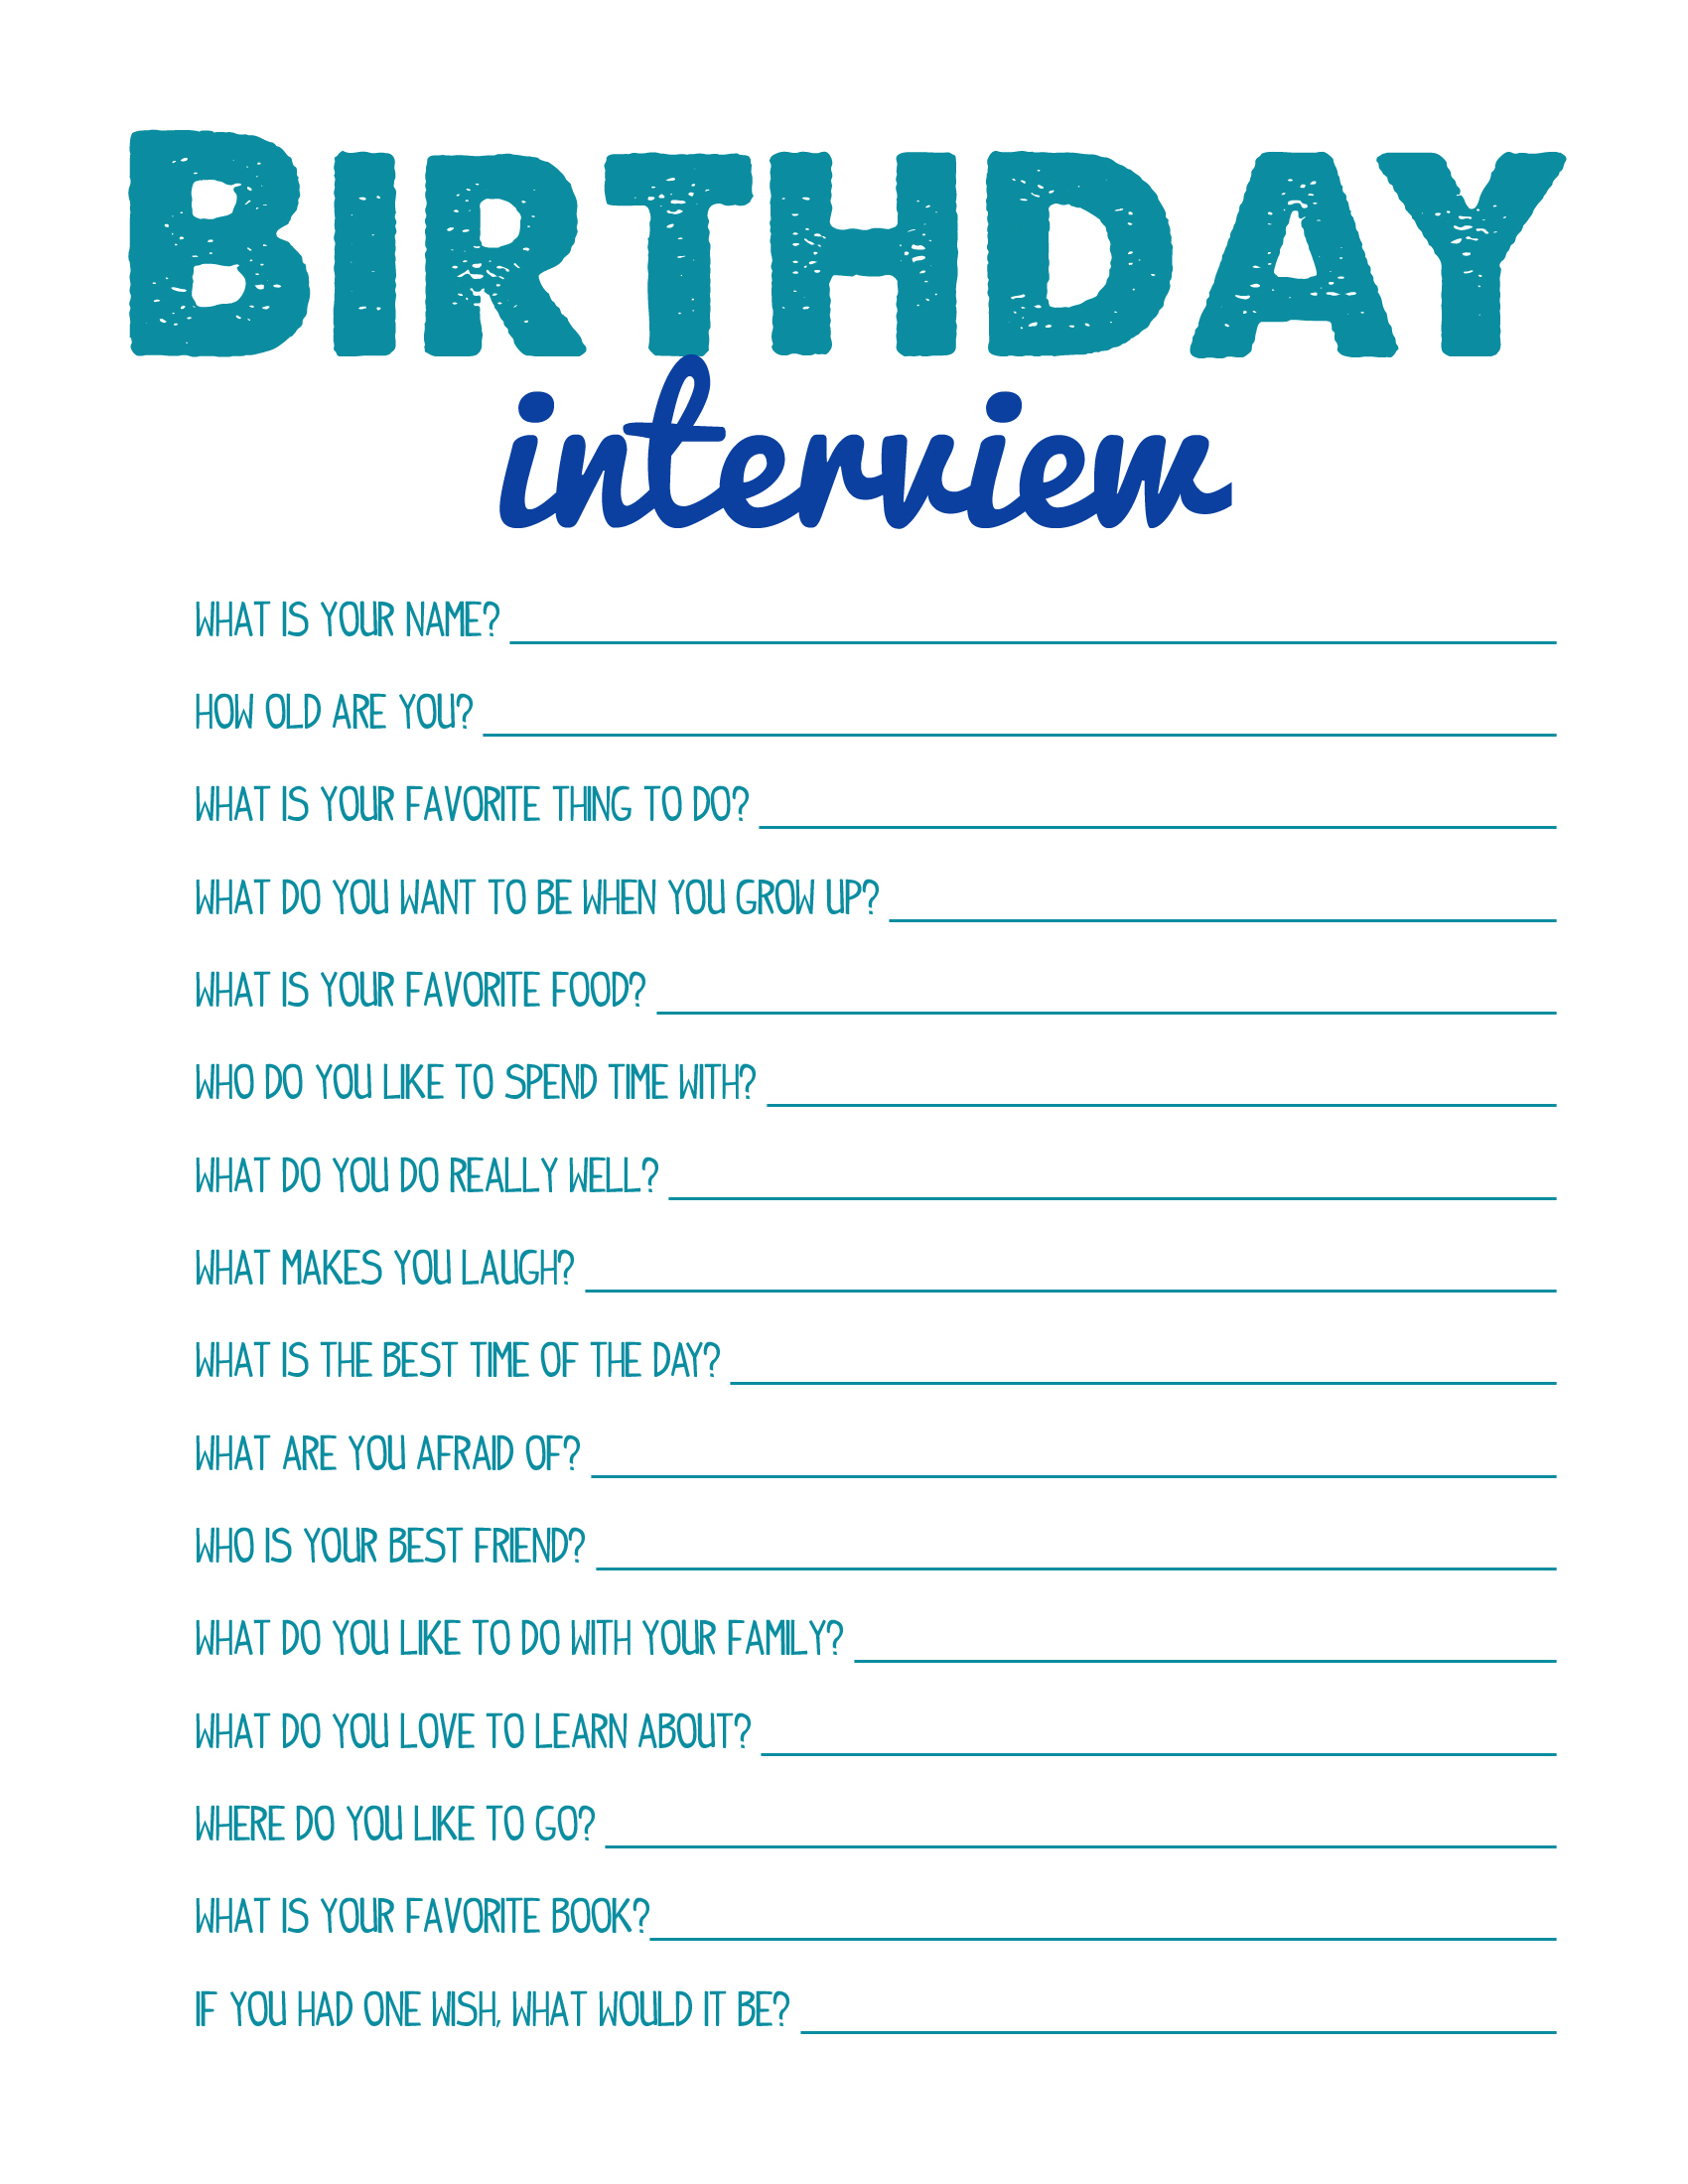 6 Images of Birthday Interview Free Printable For Adults